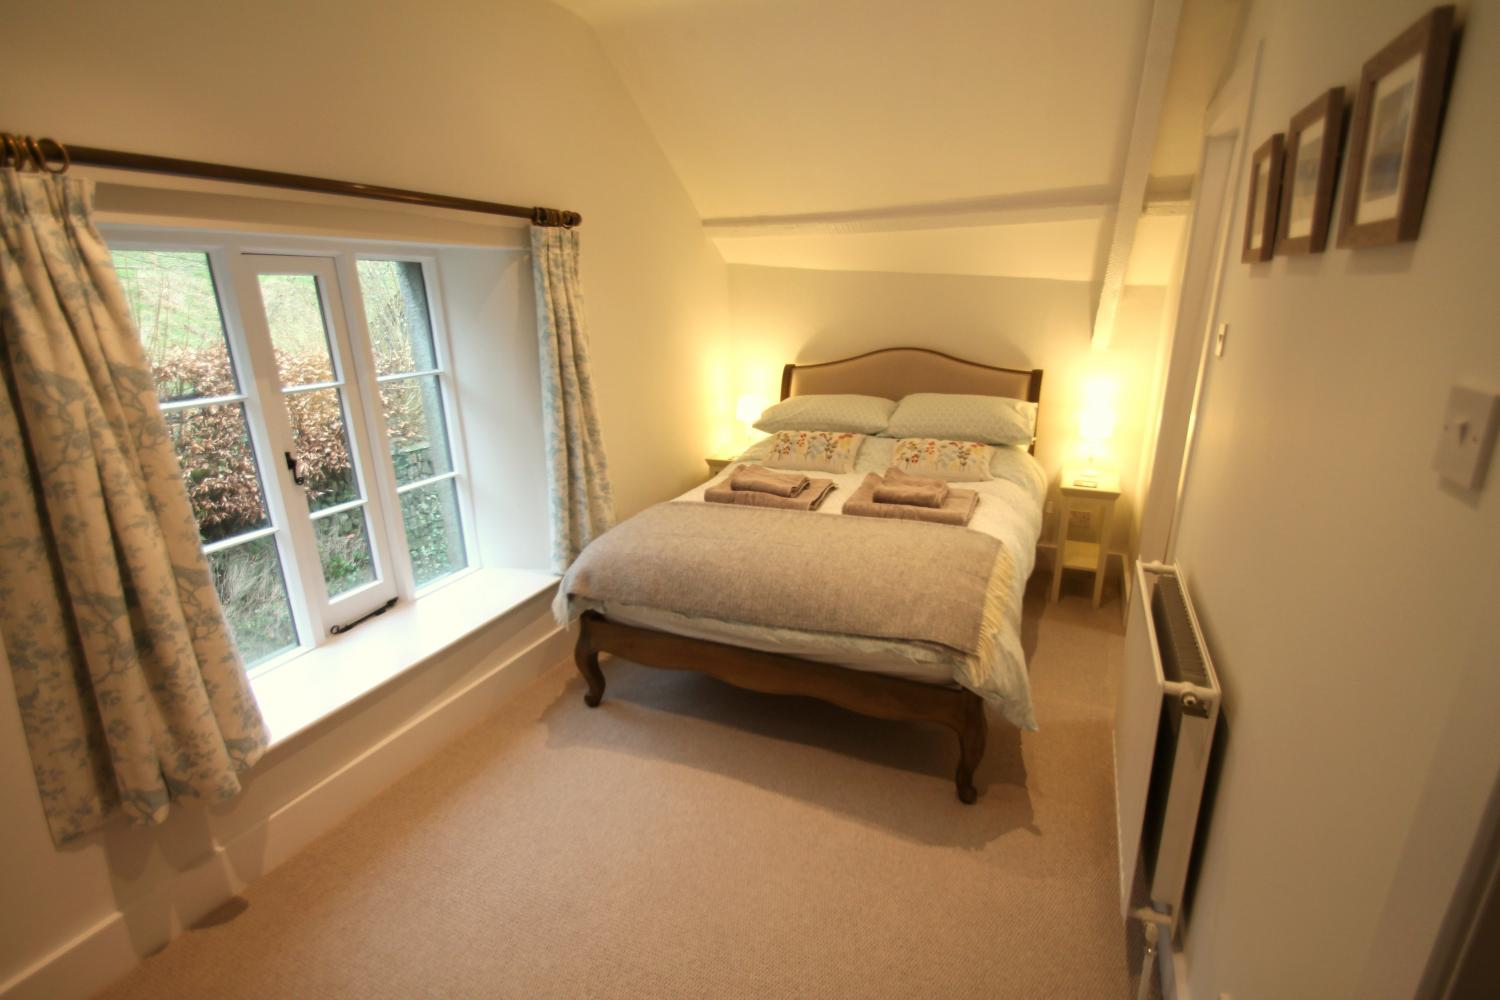 The upstairs double bedroom with en-suite.